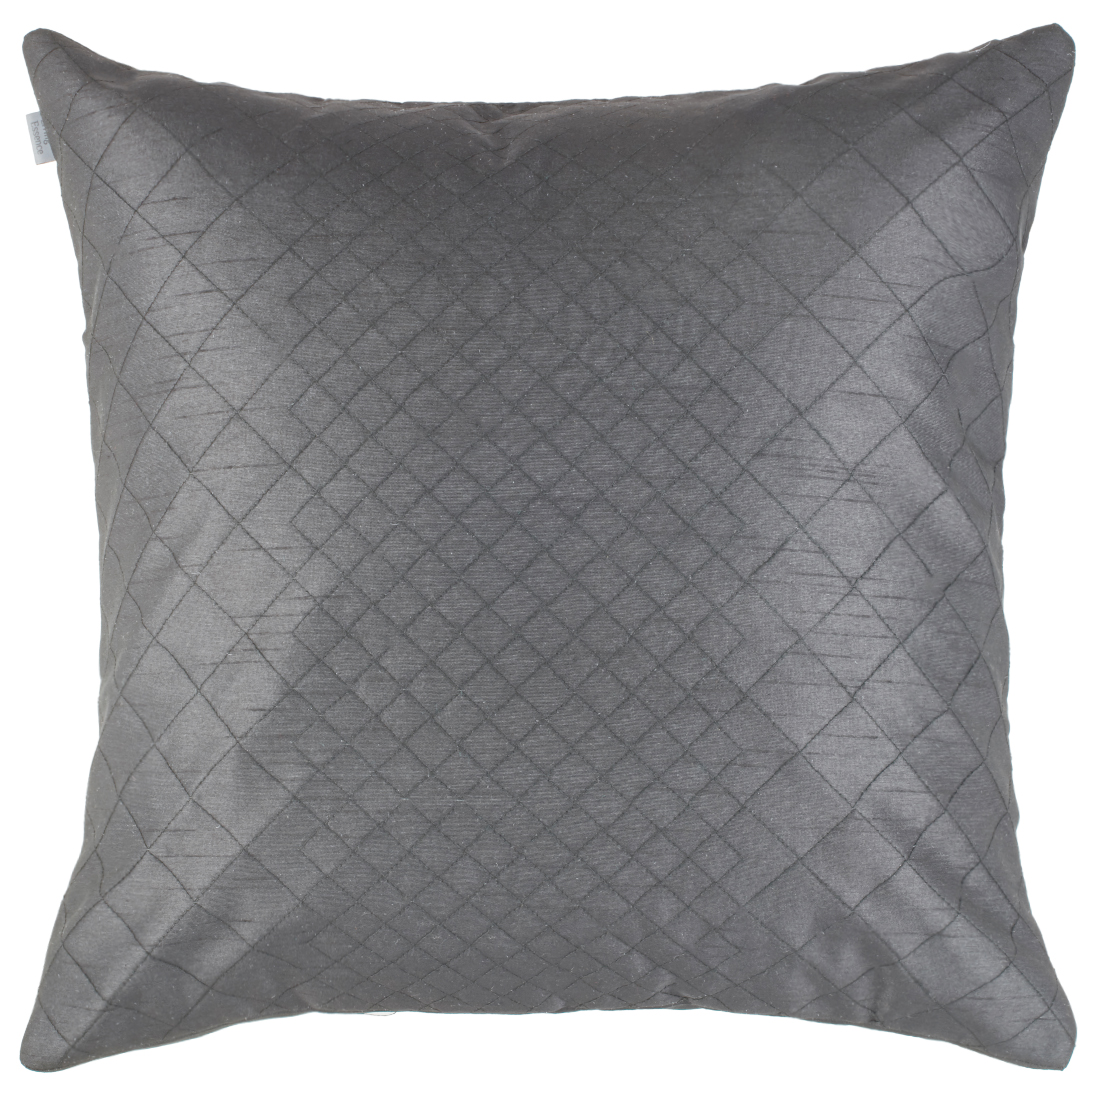 Blossom Polyester Cushion Covers in Black Colour by Living Essence